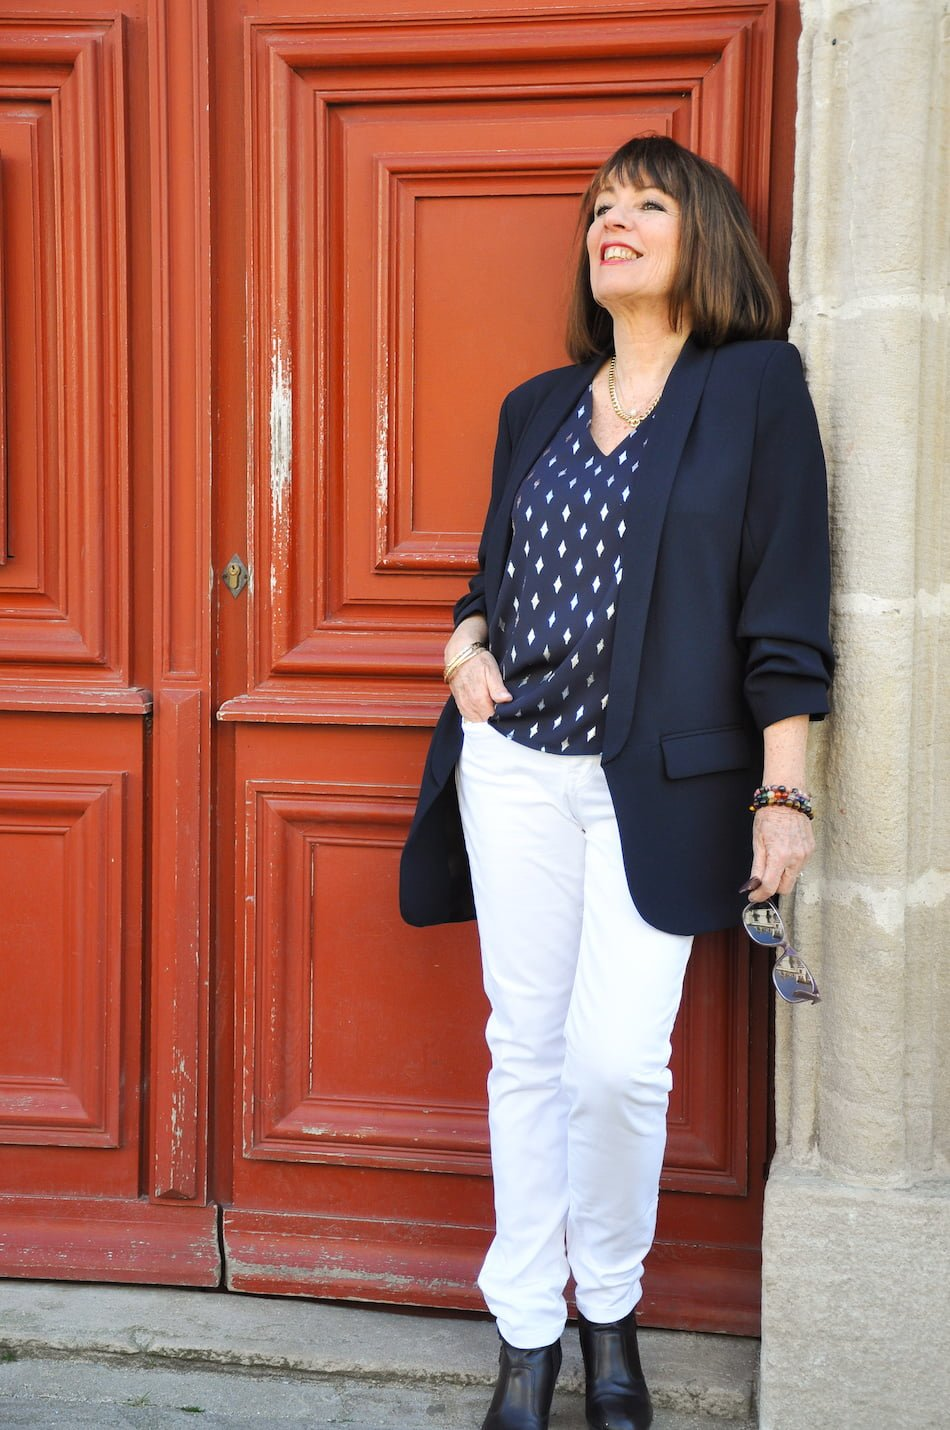 Denimstudio : le chic en Denim